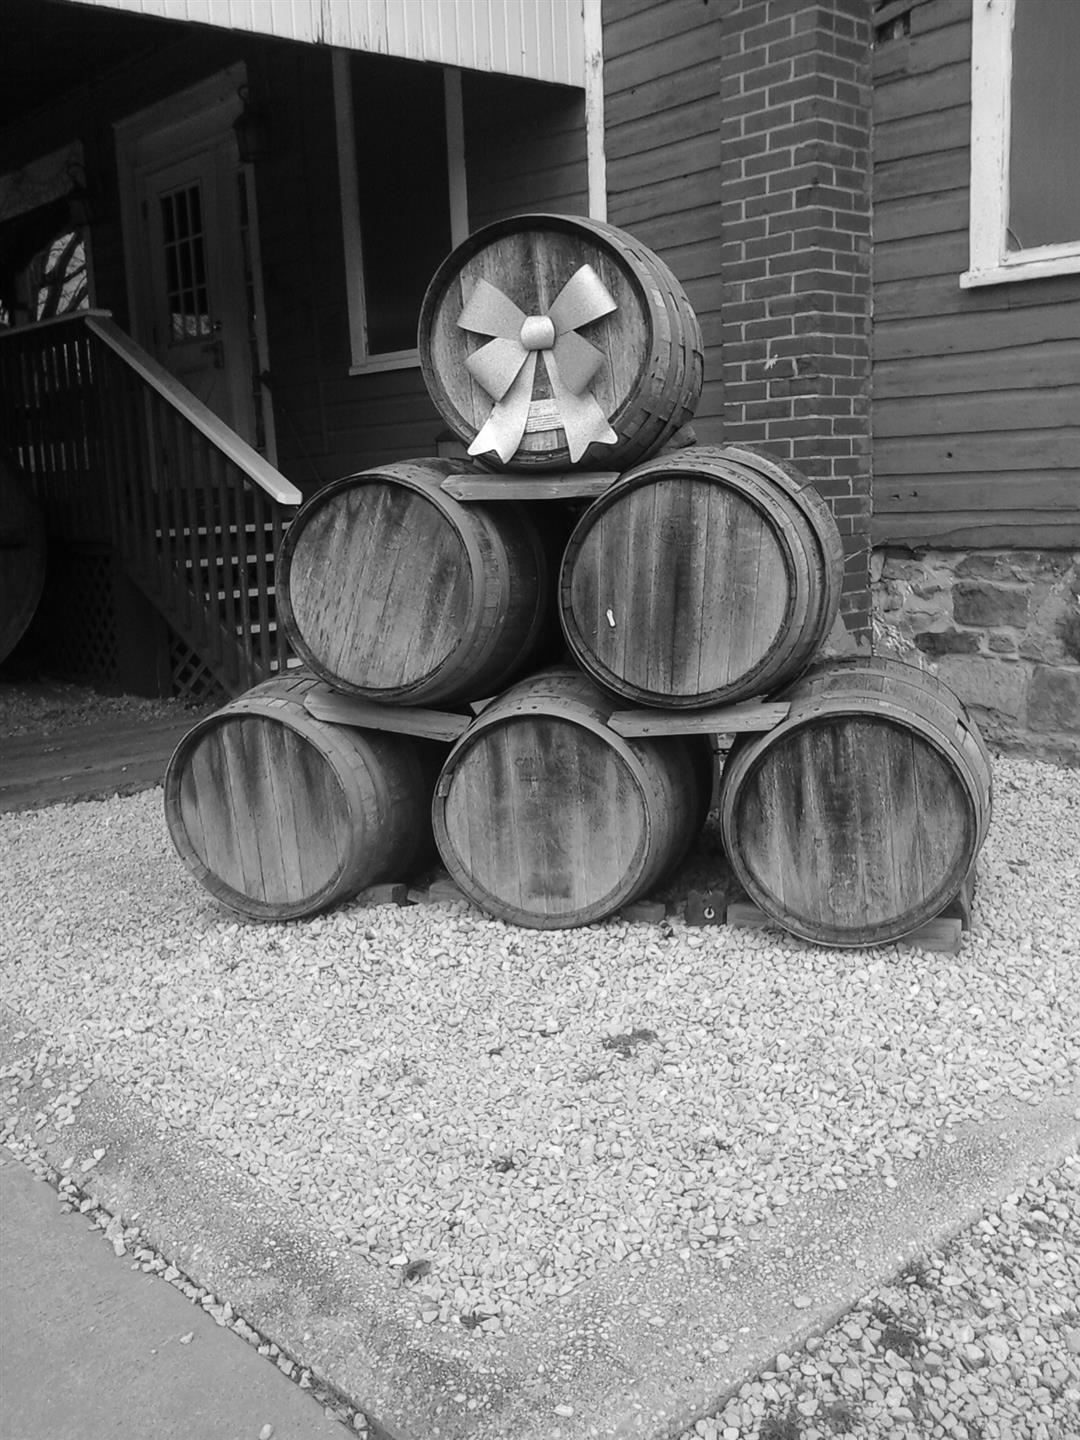 vintage photo of multiple wine barrels stacked together